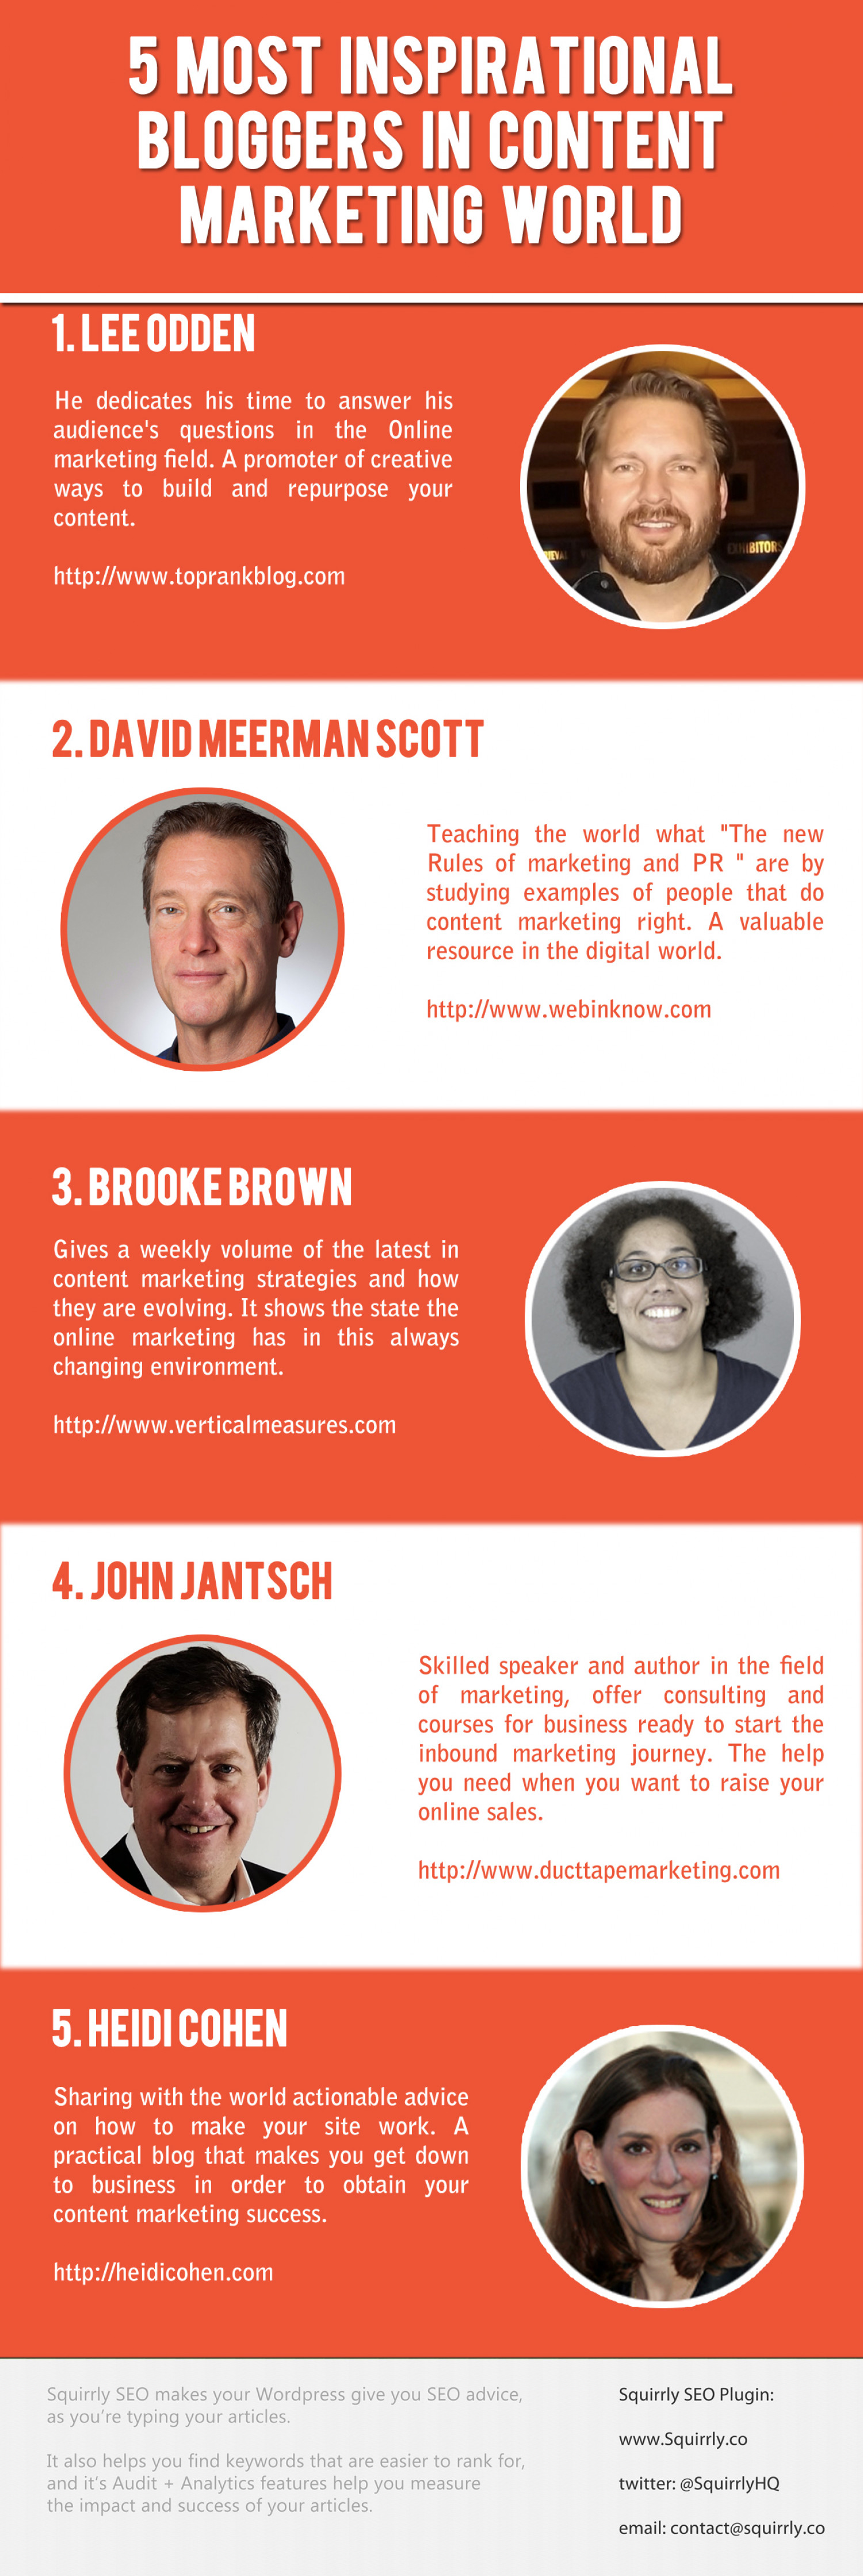 5 Most Inspirational Bloggers In Content Marketing World Infographic